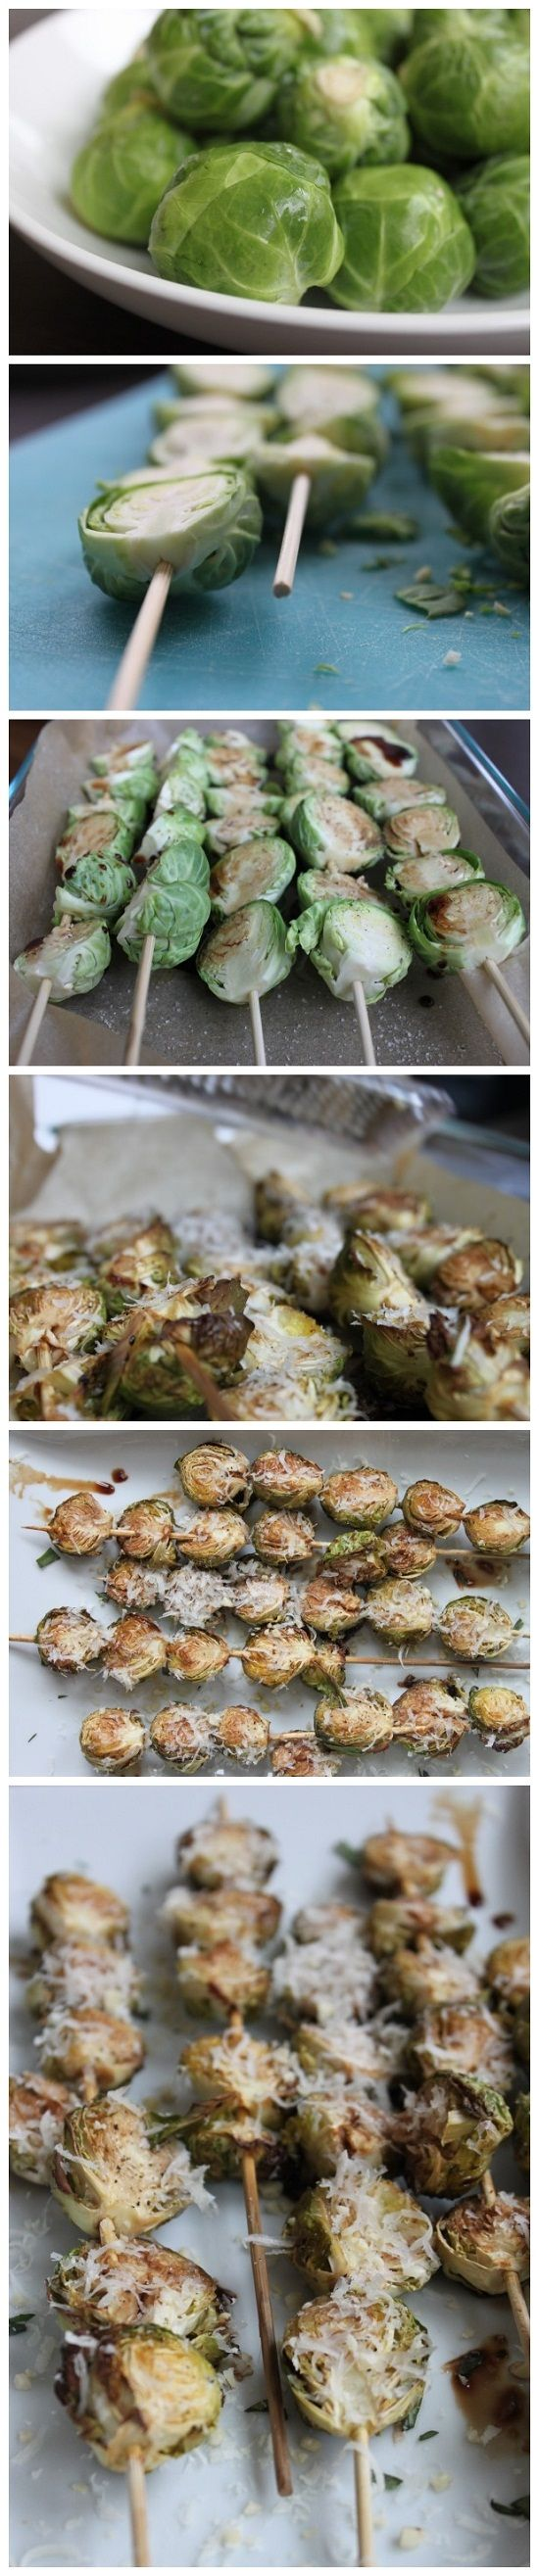 Balsamic-Glazed Brussels Sprouts w/Crushed Pine Nuts & Parm